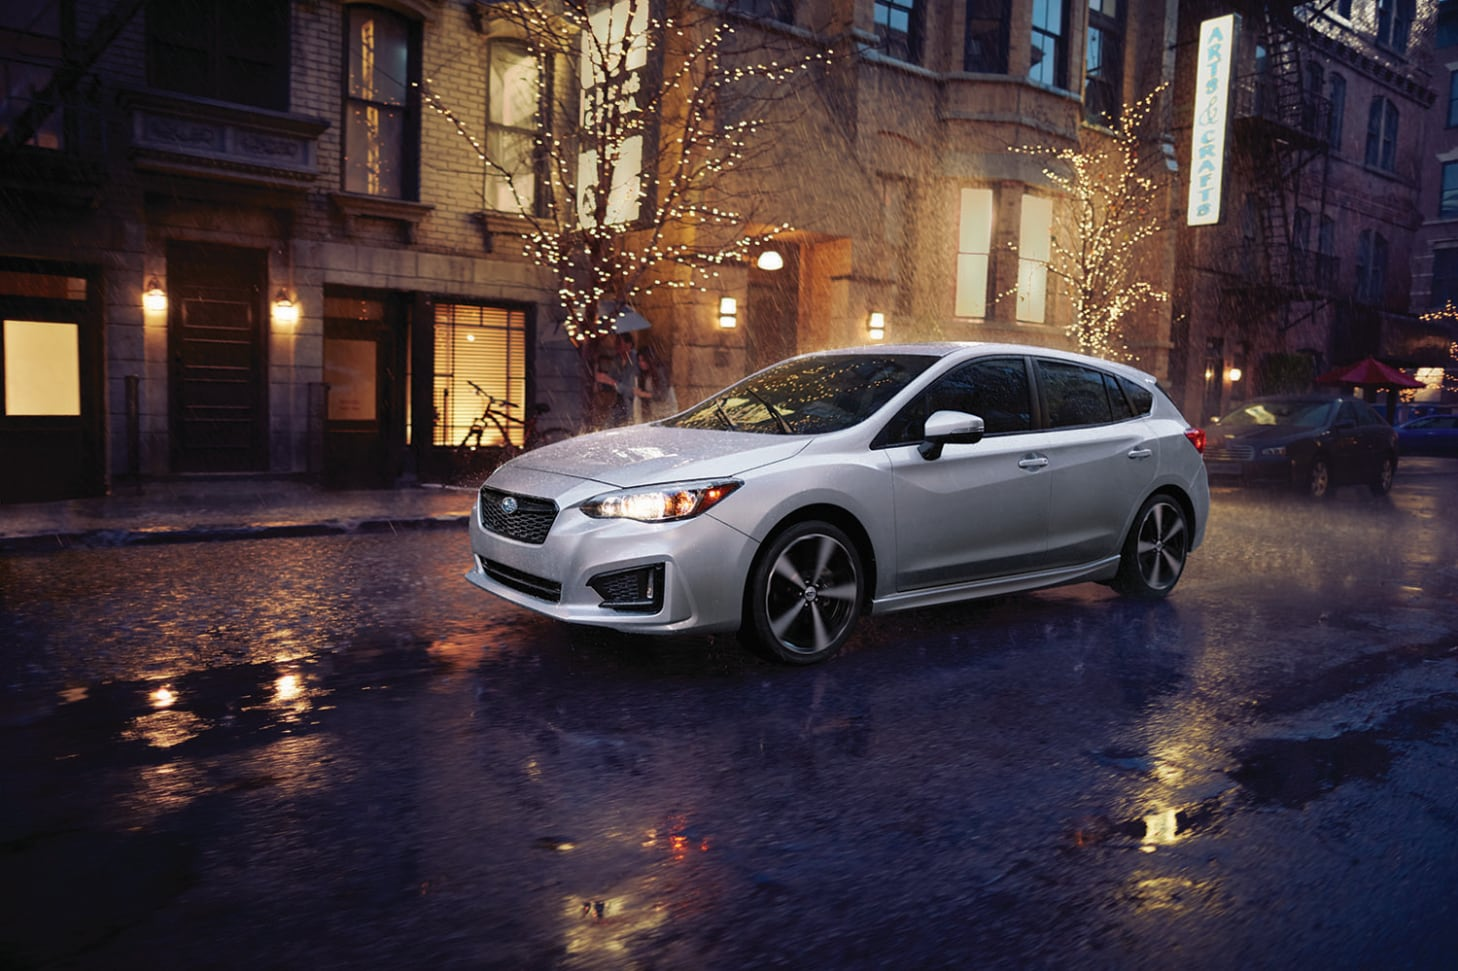 2017 Subaru Impreza Hatchback for sale in Somerset, MA